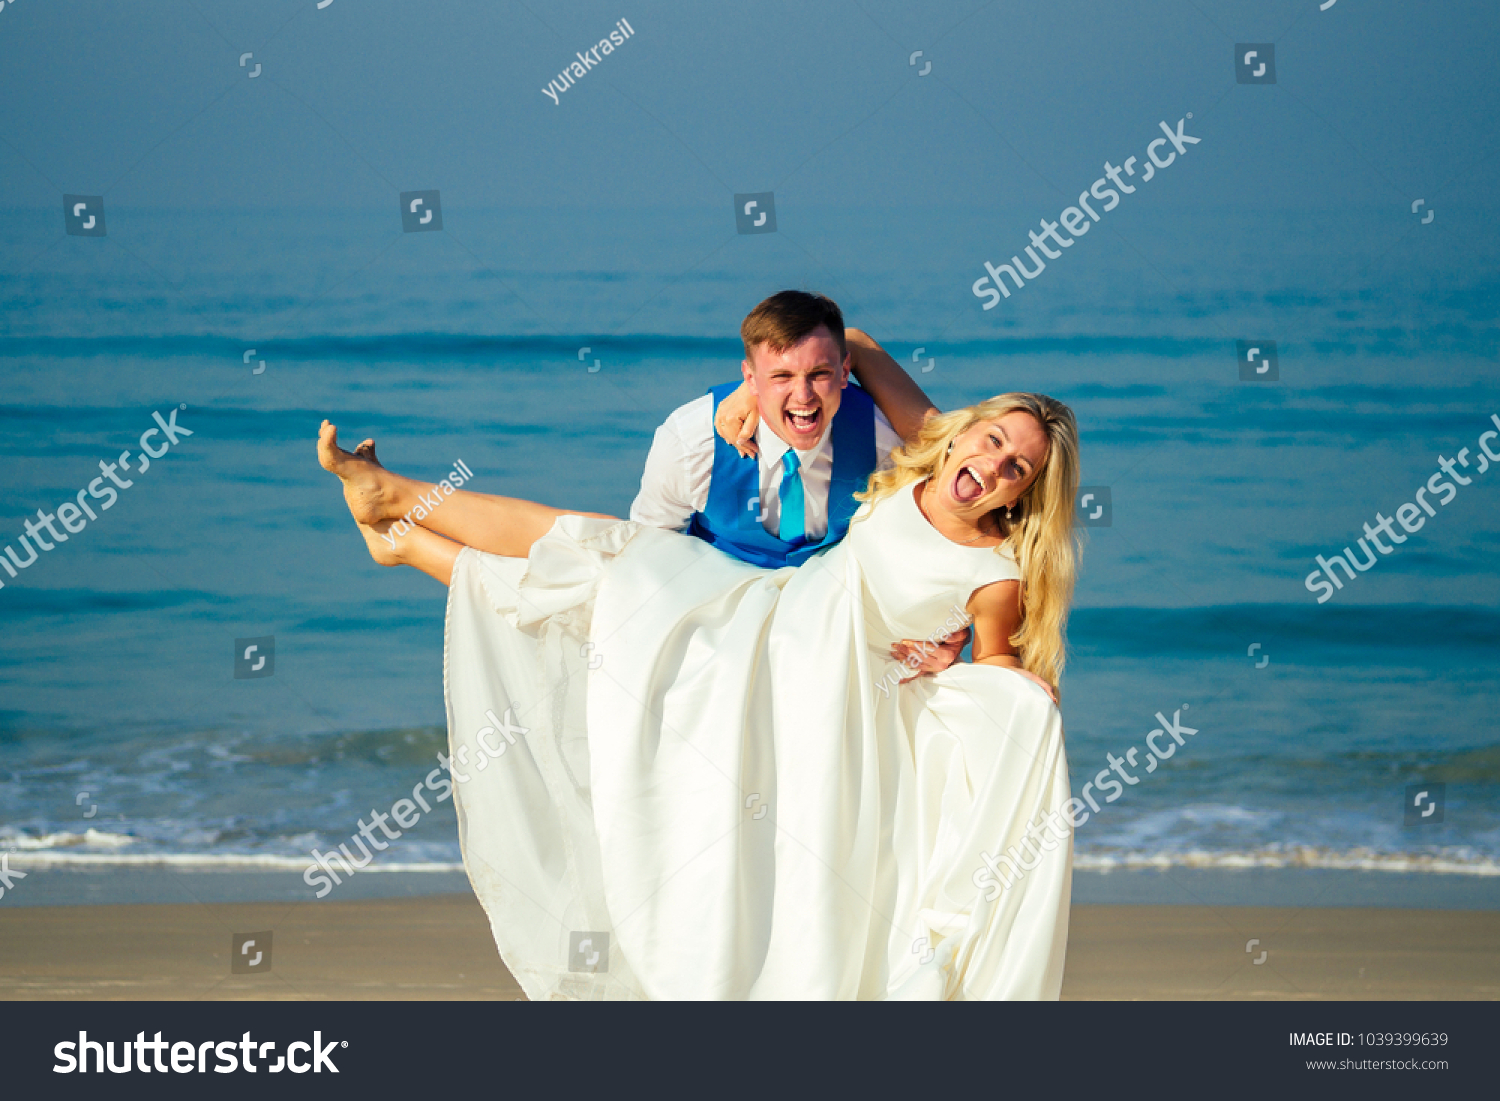 Handsome Groom Chic Suit Holding Beautiful Stock Photo (100% Legal ...